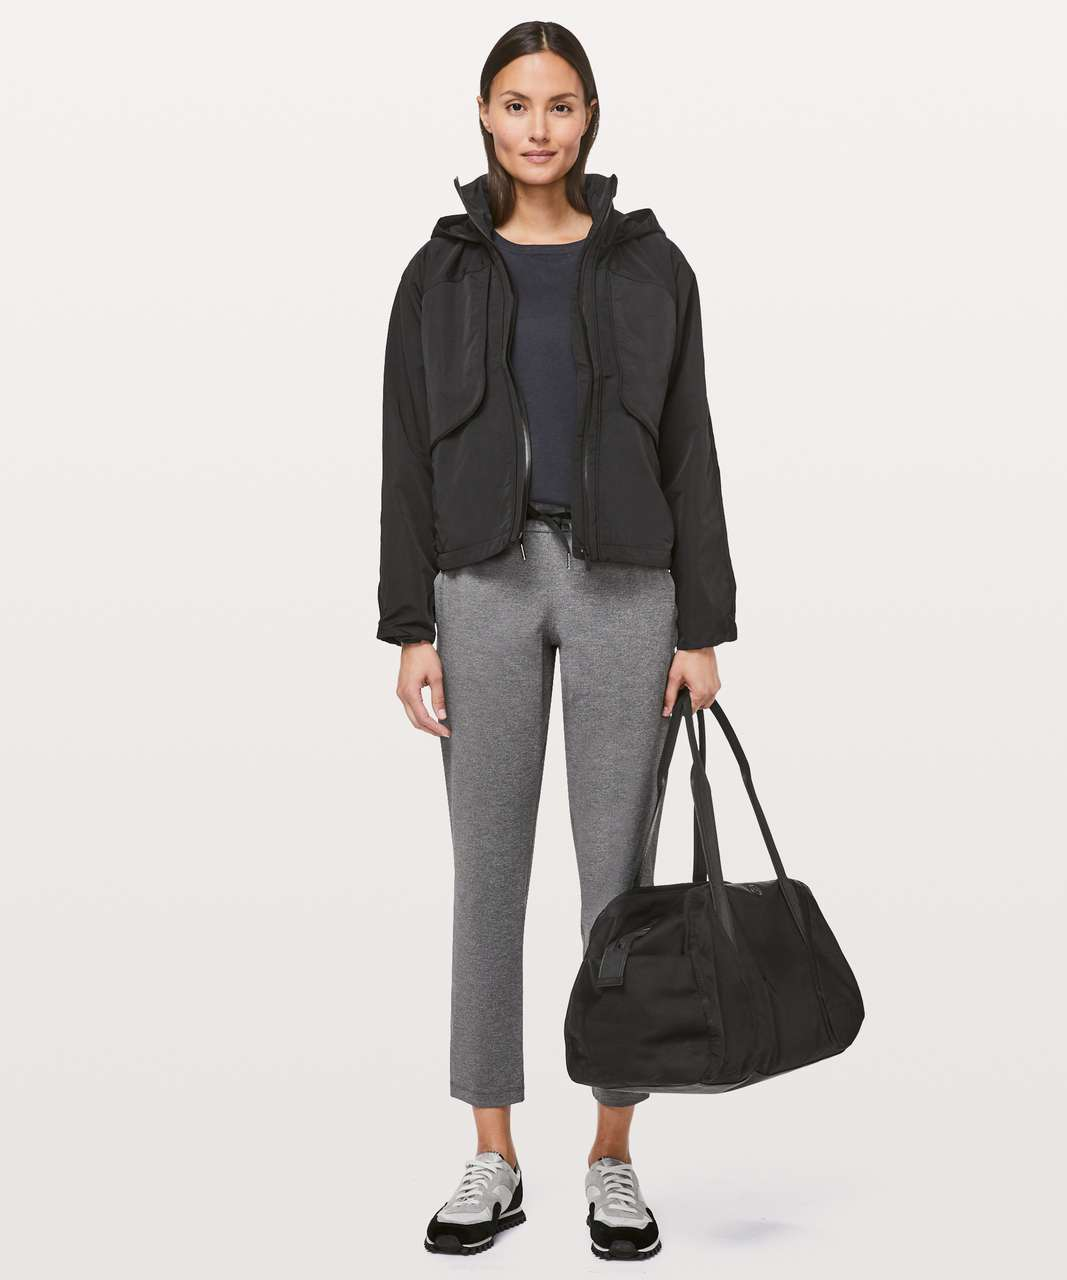 Lululemon Always Effortless Jacket - Black